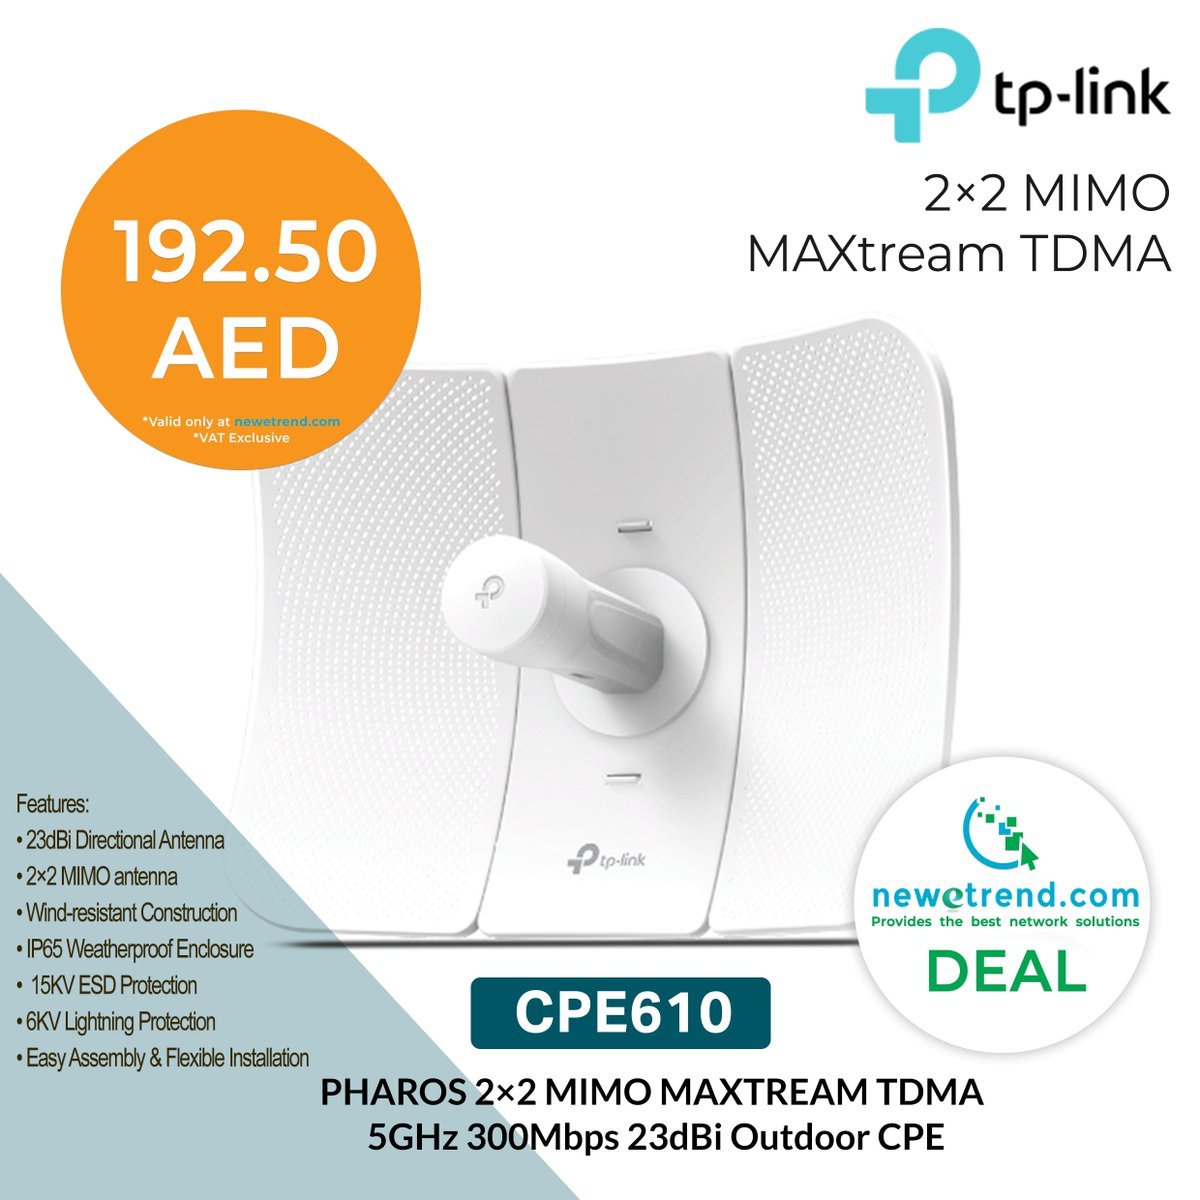 Newetrendcom Newetrend Twitter Tp Link Cpe610 5ghz 300mbps Outdoor Cpe Pharos 2x2 Mimo Maxtream Tdma Antenna For Long Range Wireless Transmission Order Now Https Googl Zlkttp Visit Register At